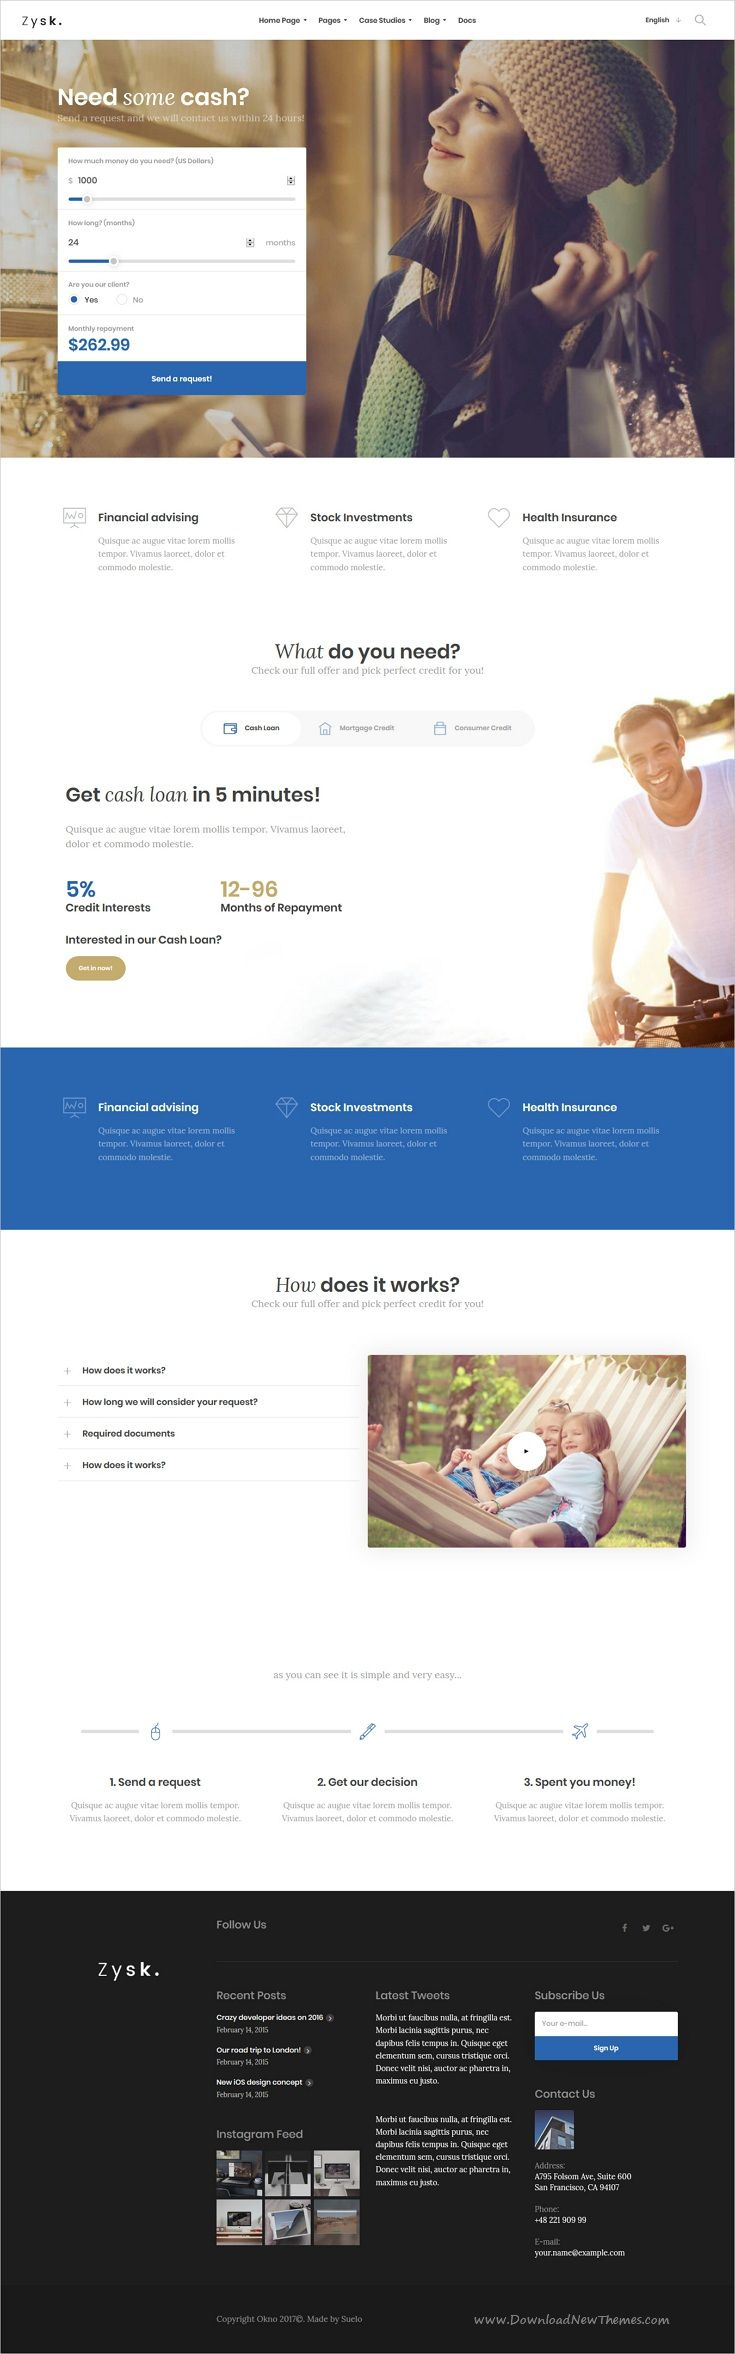 Zysk is smooth and stylish 7in1 responsive #WordPress theme for #loan #credit #investment business, finance and consulting services professional website download now..